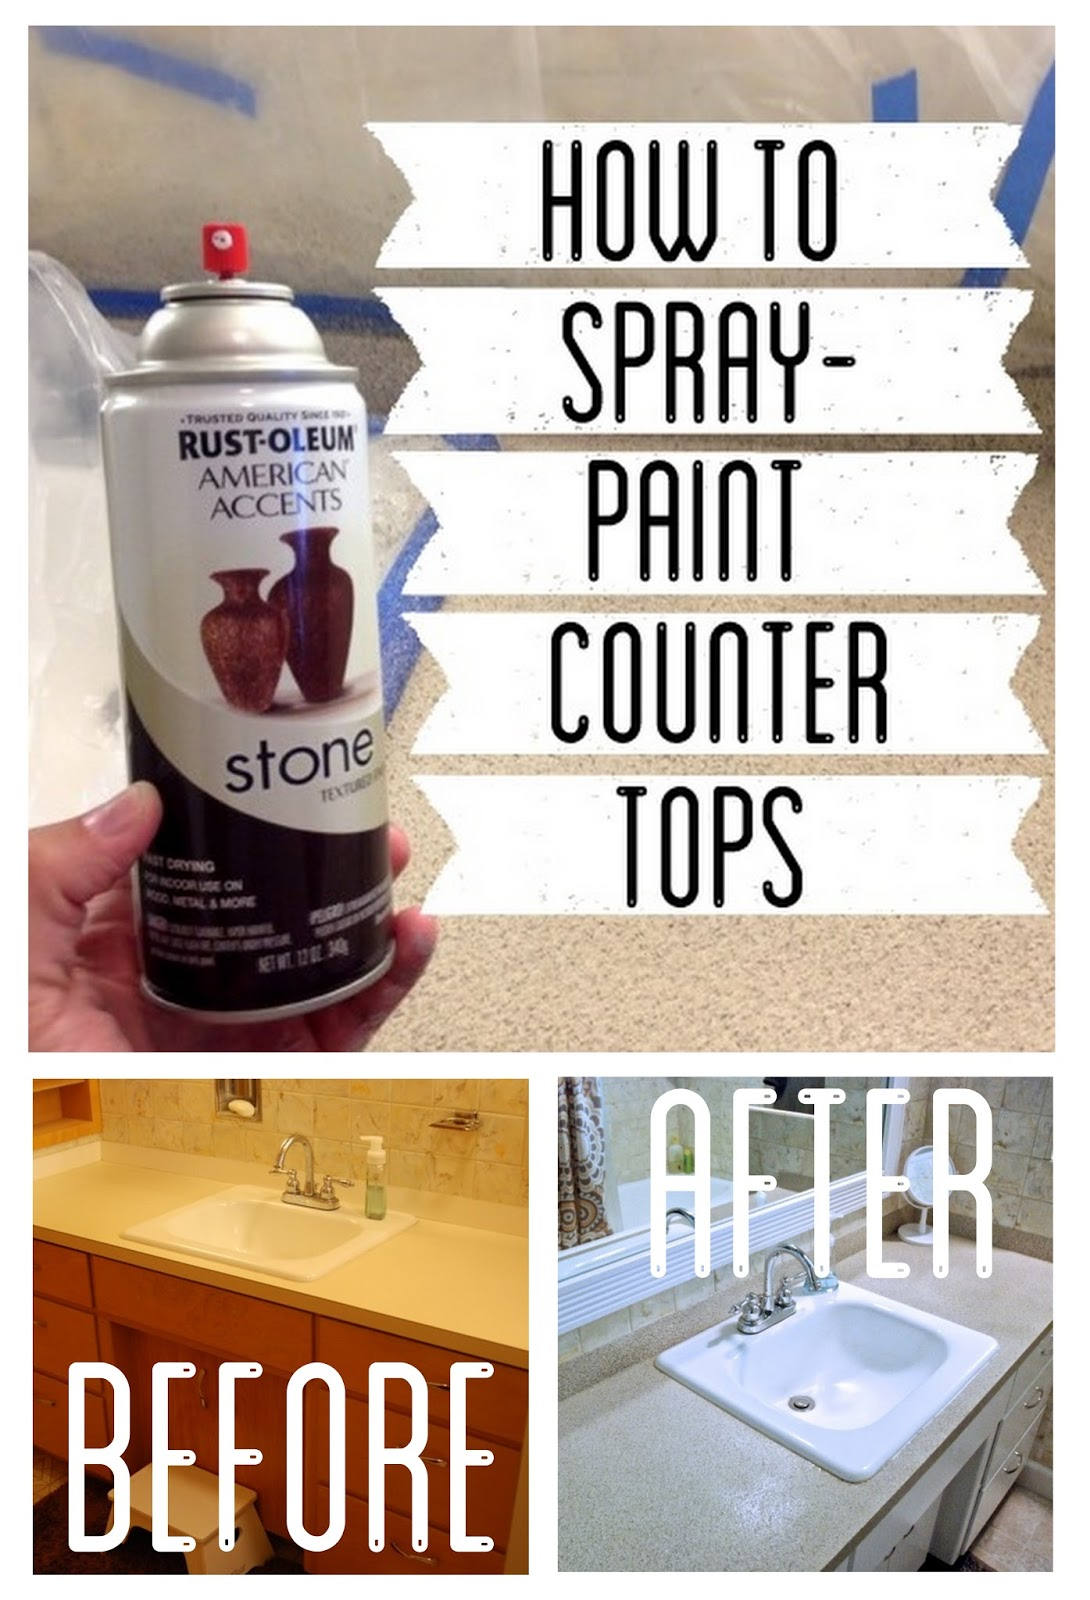 Http Www Brightgreendoor Com 2013 07 How To Spray Paint Countertops Html